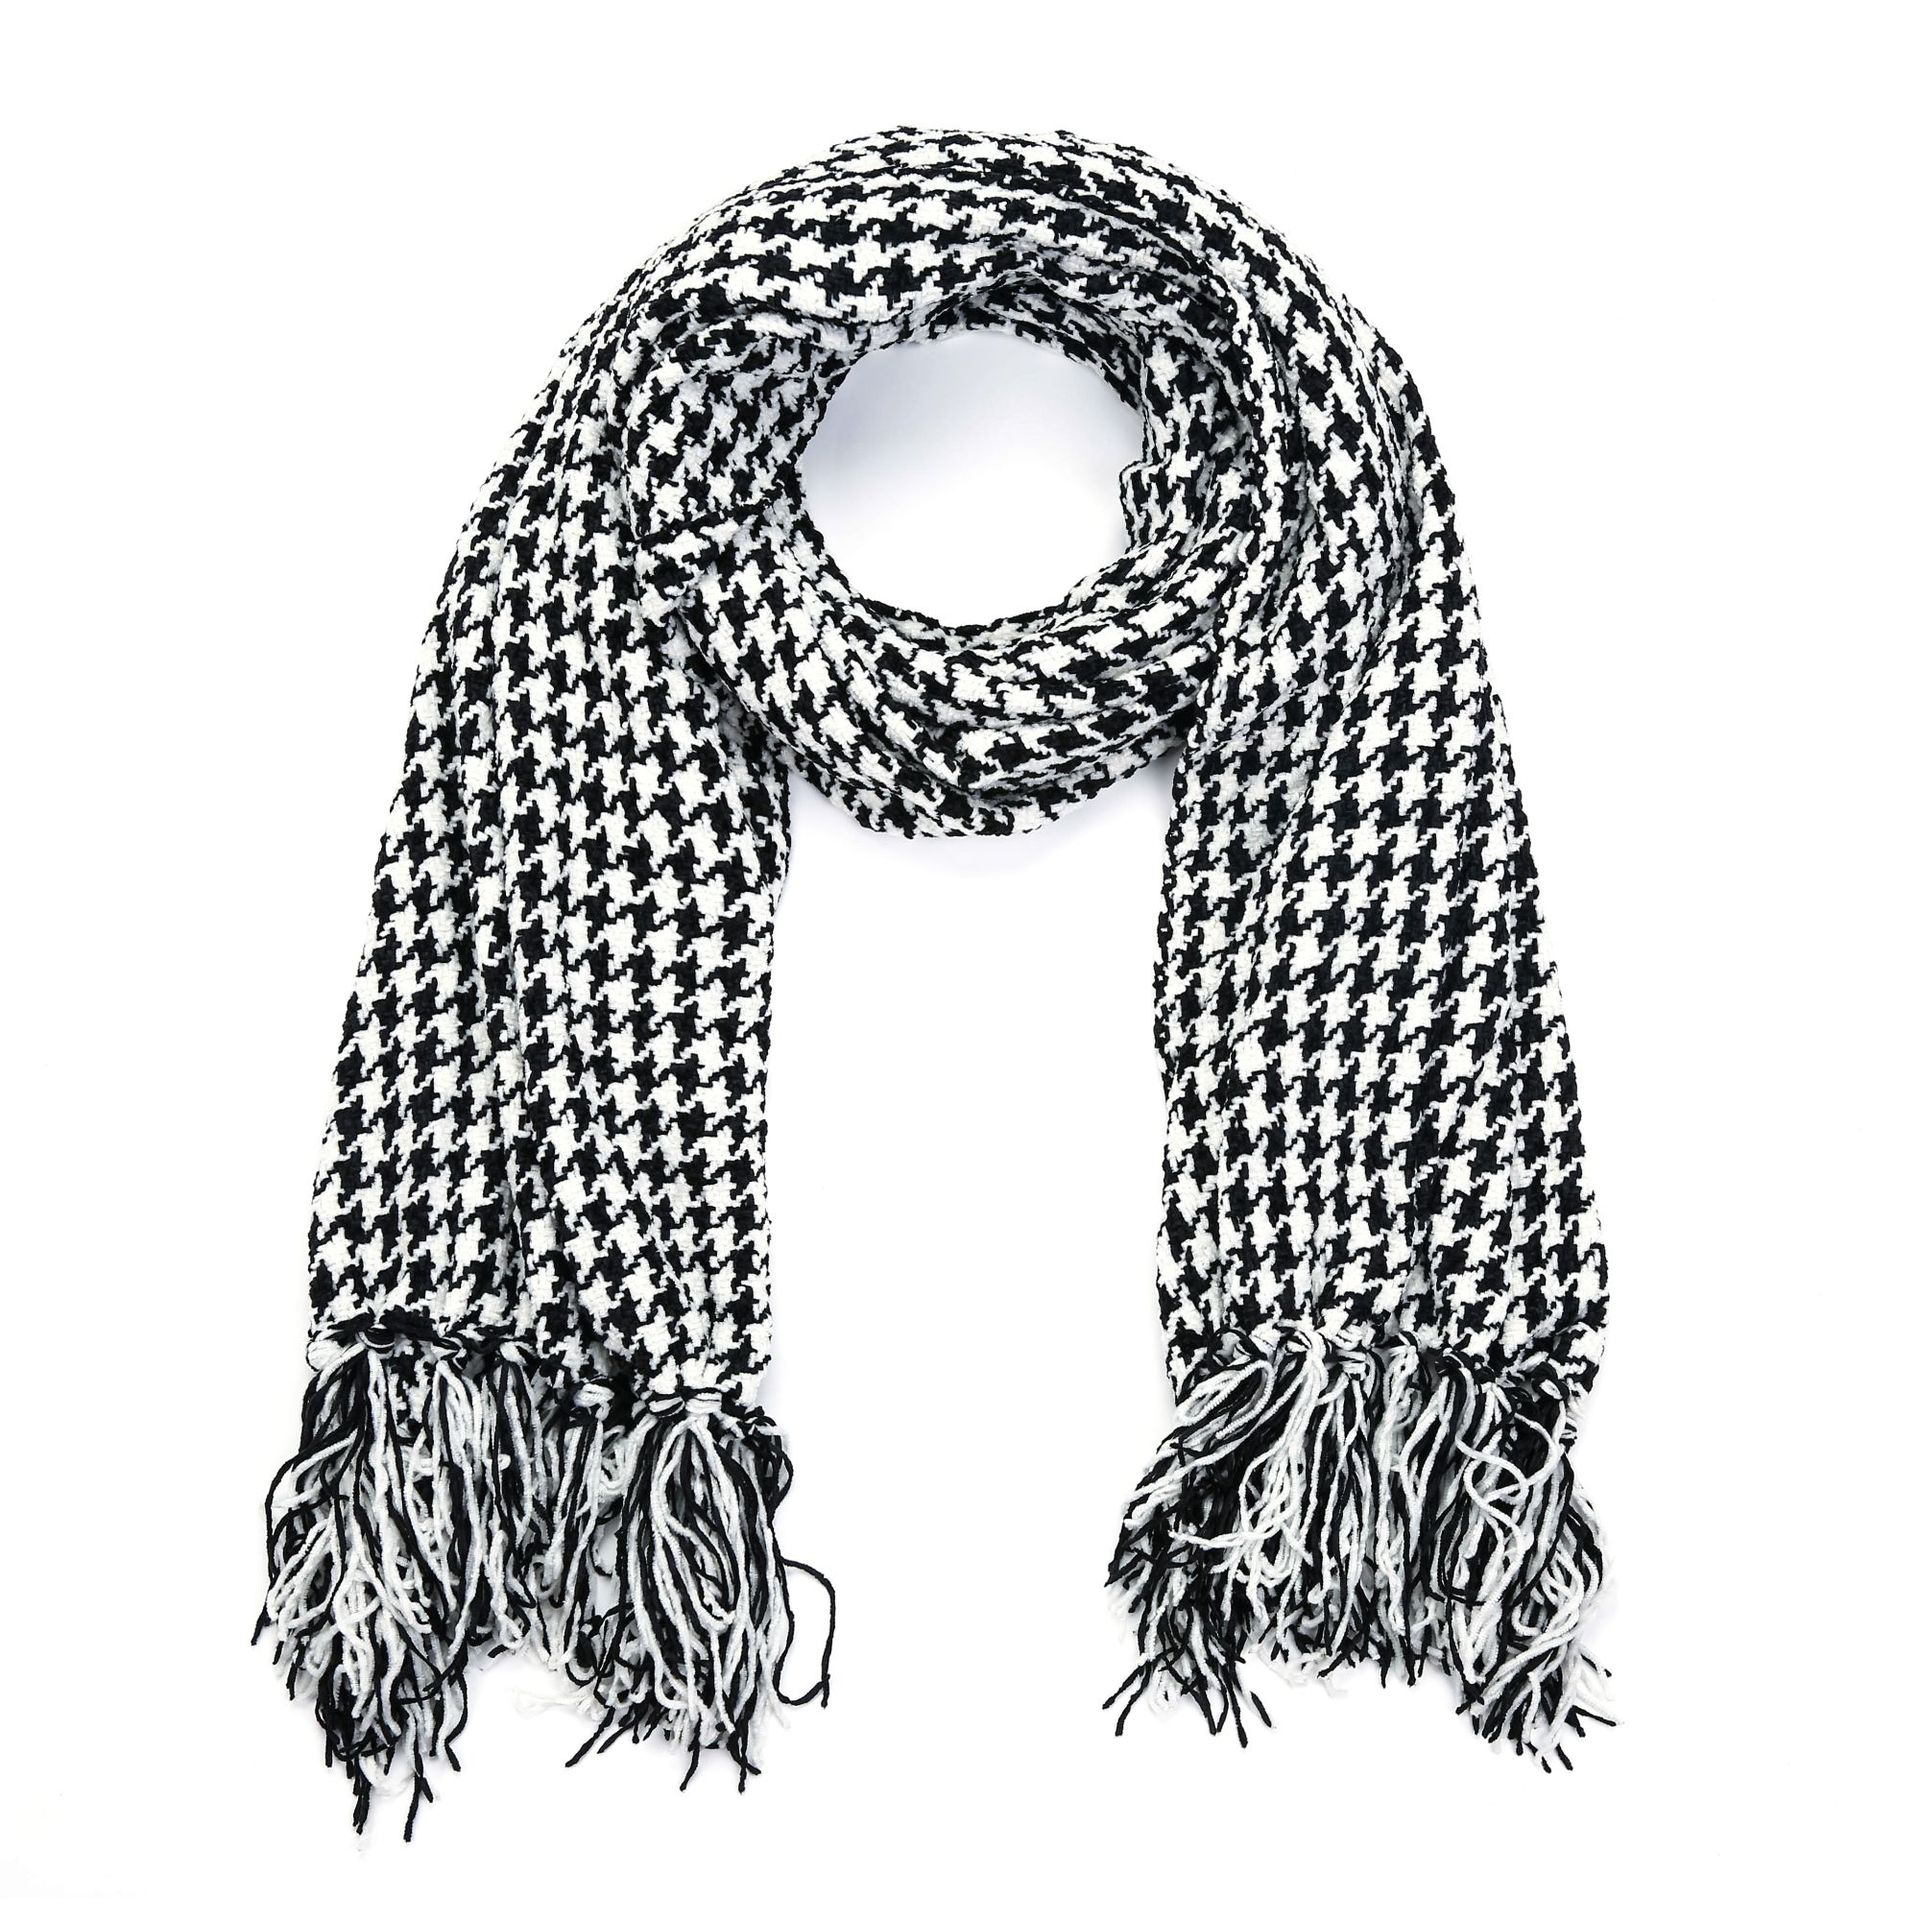 Black And White Knit Thousands Of Birds Wool Europe And America Broom Shall Bearded Have Elasticity Winter Versatile Warm Scarf